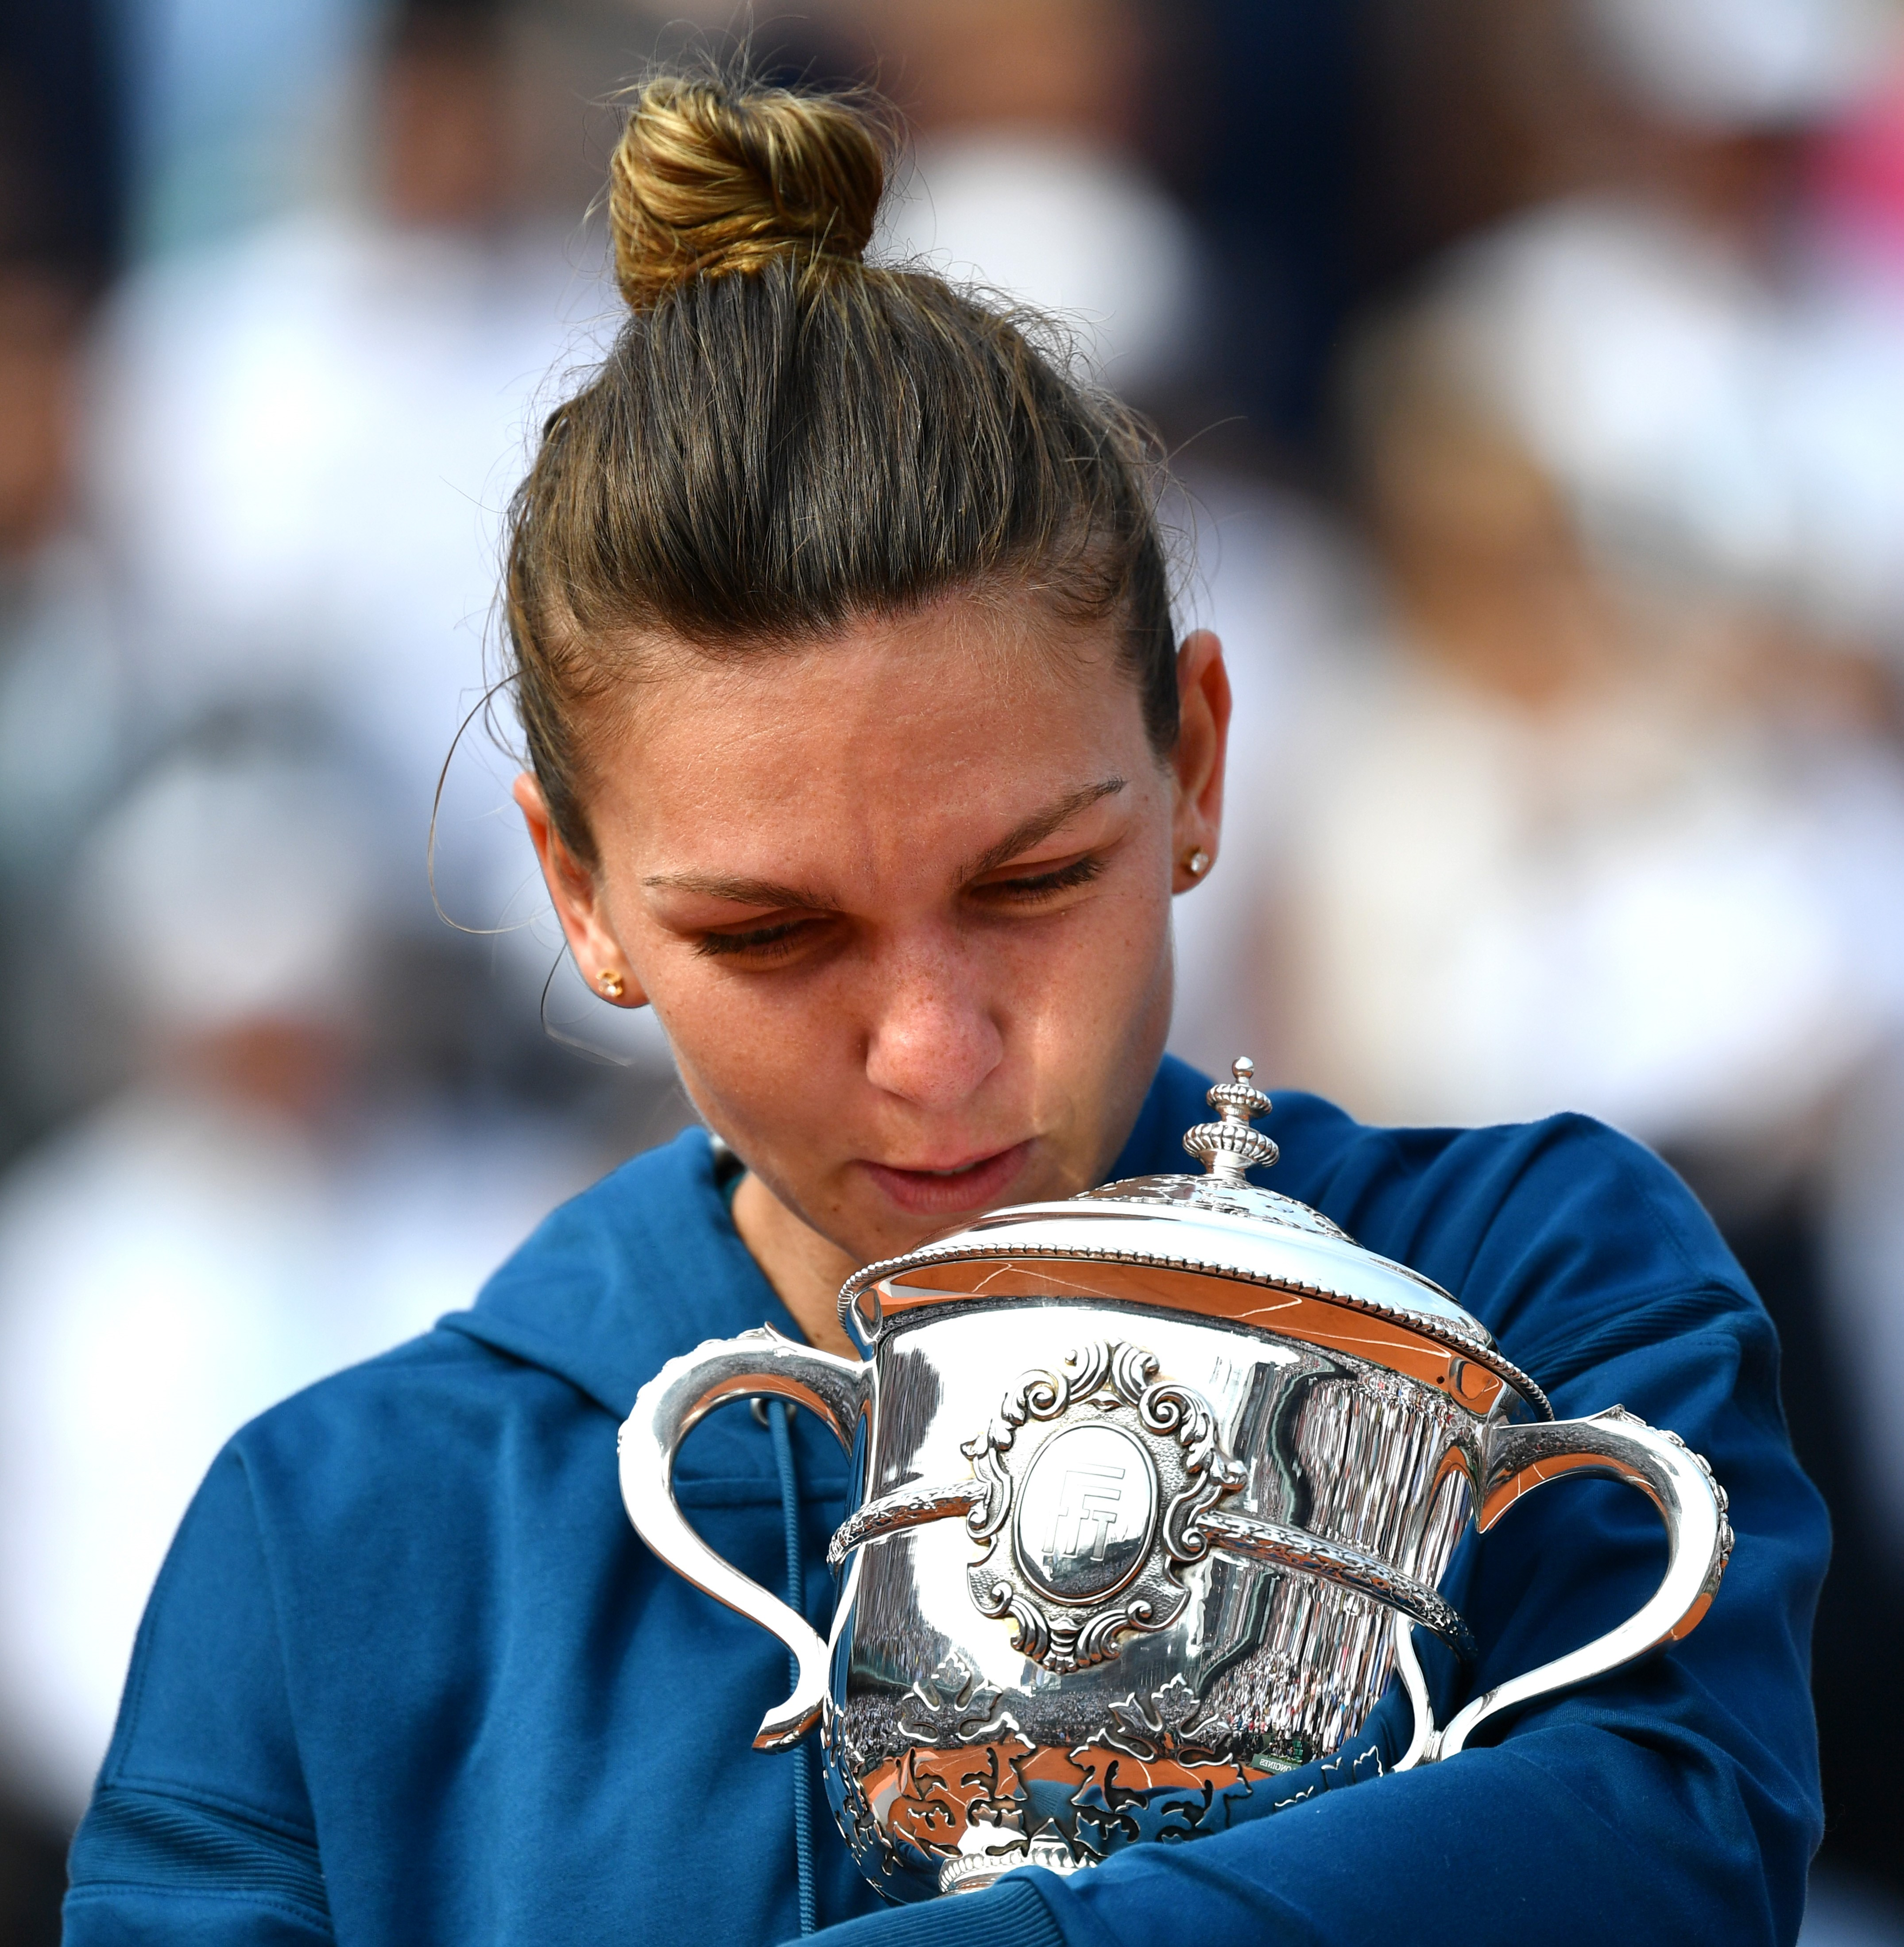 PARIS, FRANCE - JUNE 09: Simona Halep of Romania holds championship trophy after winning her French Open finals match against Sloane Stephens (not seen) of the USA at Roland Garros Stadium in Paris, France on June 09, 2018. Mustafa Yalcin / Anadolu Agency